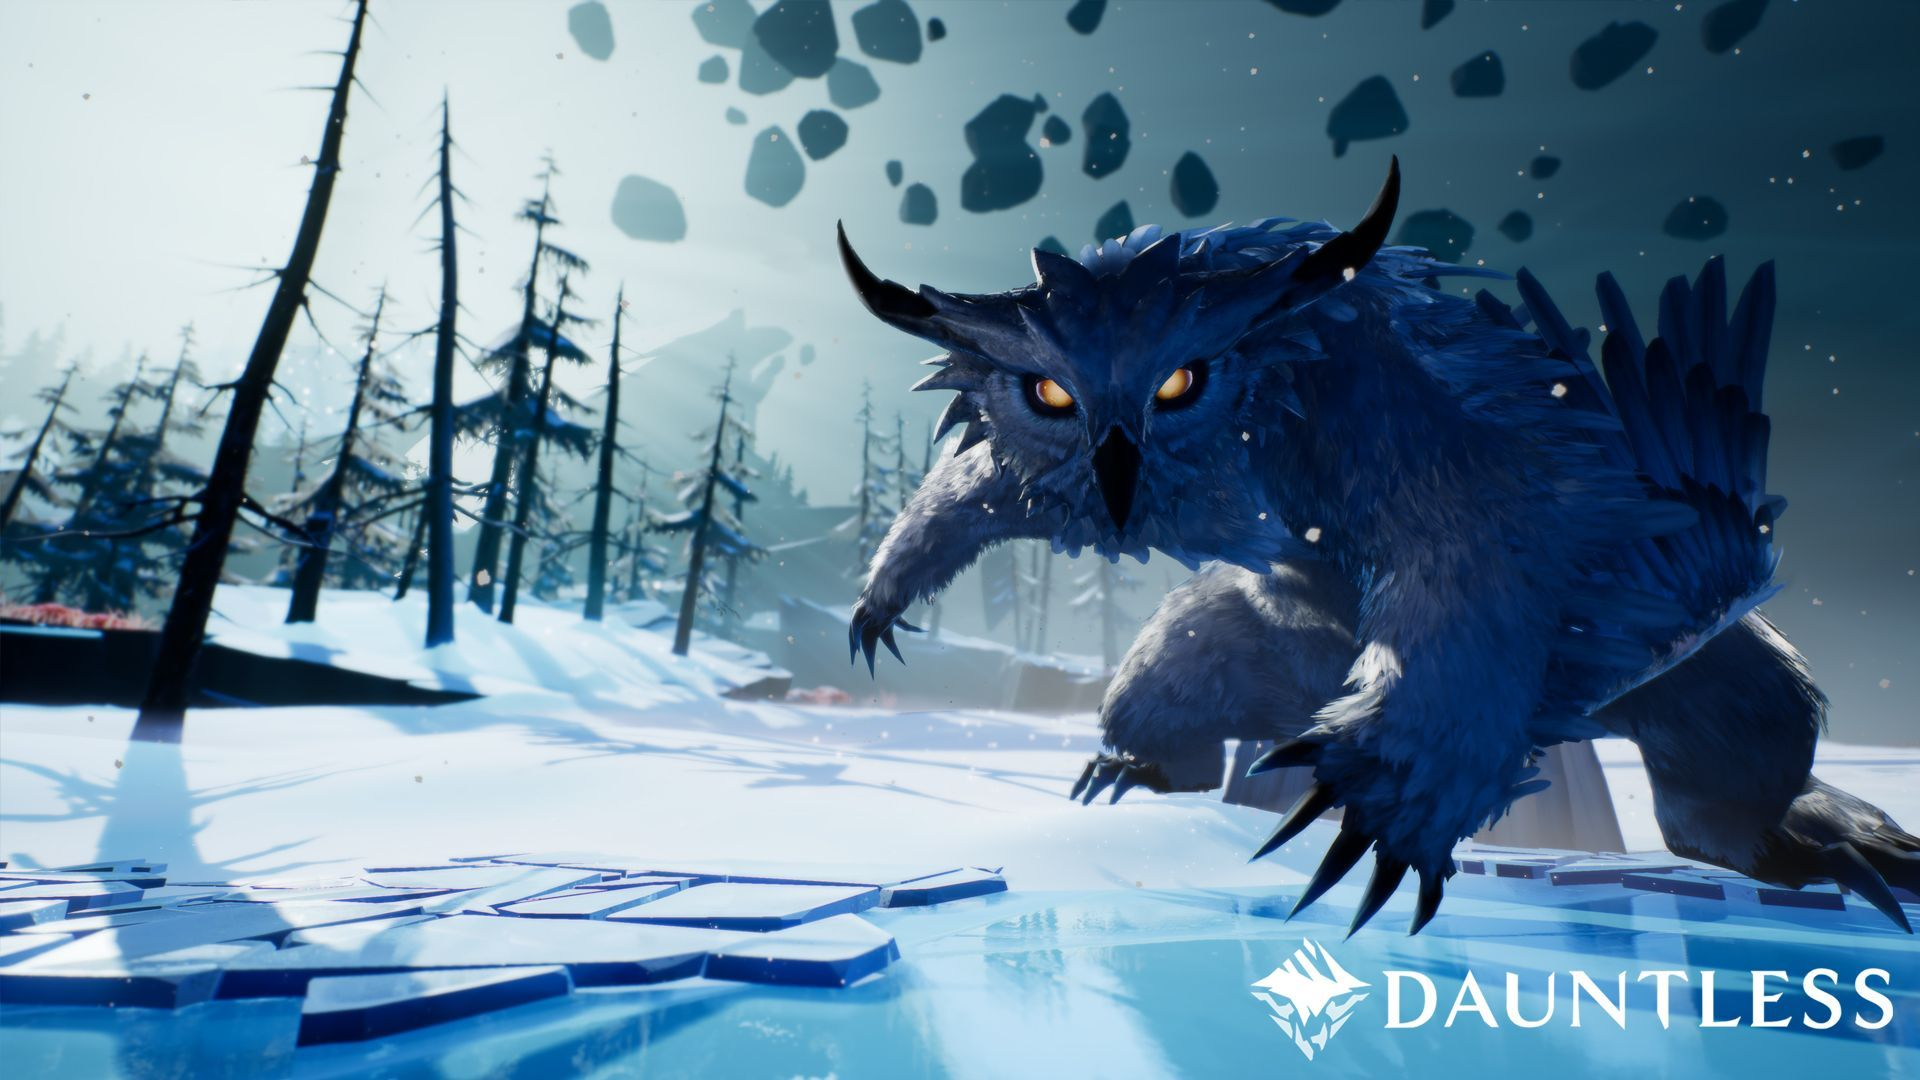 dauntless3